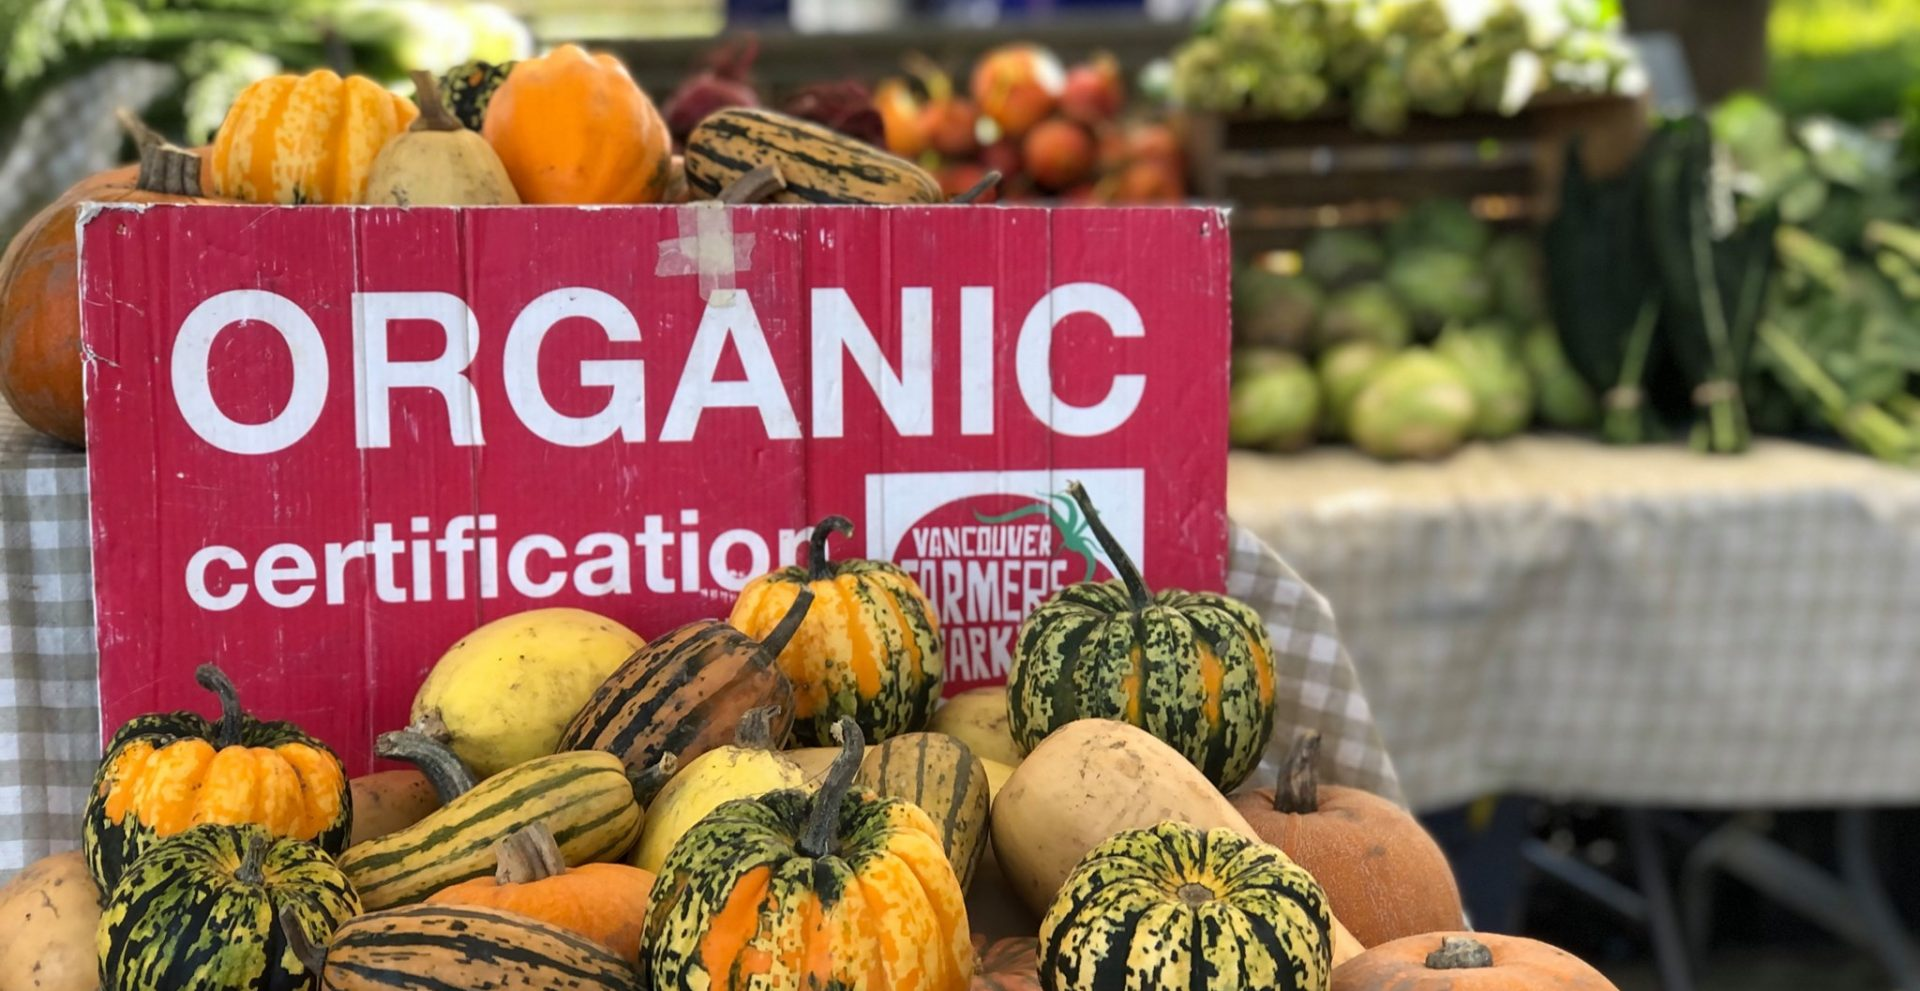 Best fall and winter farmers' markets in Metro Vancouver